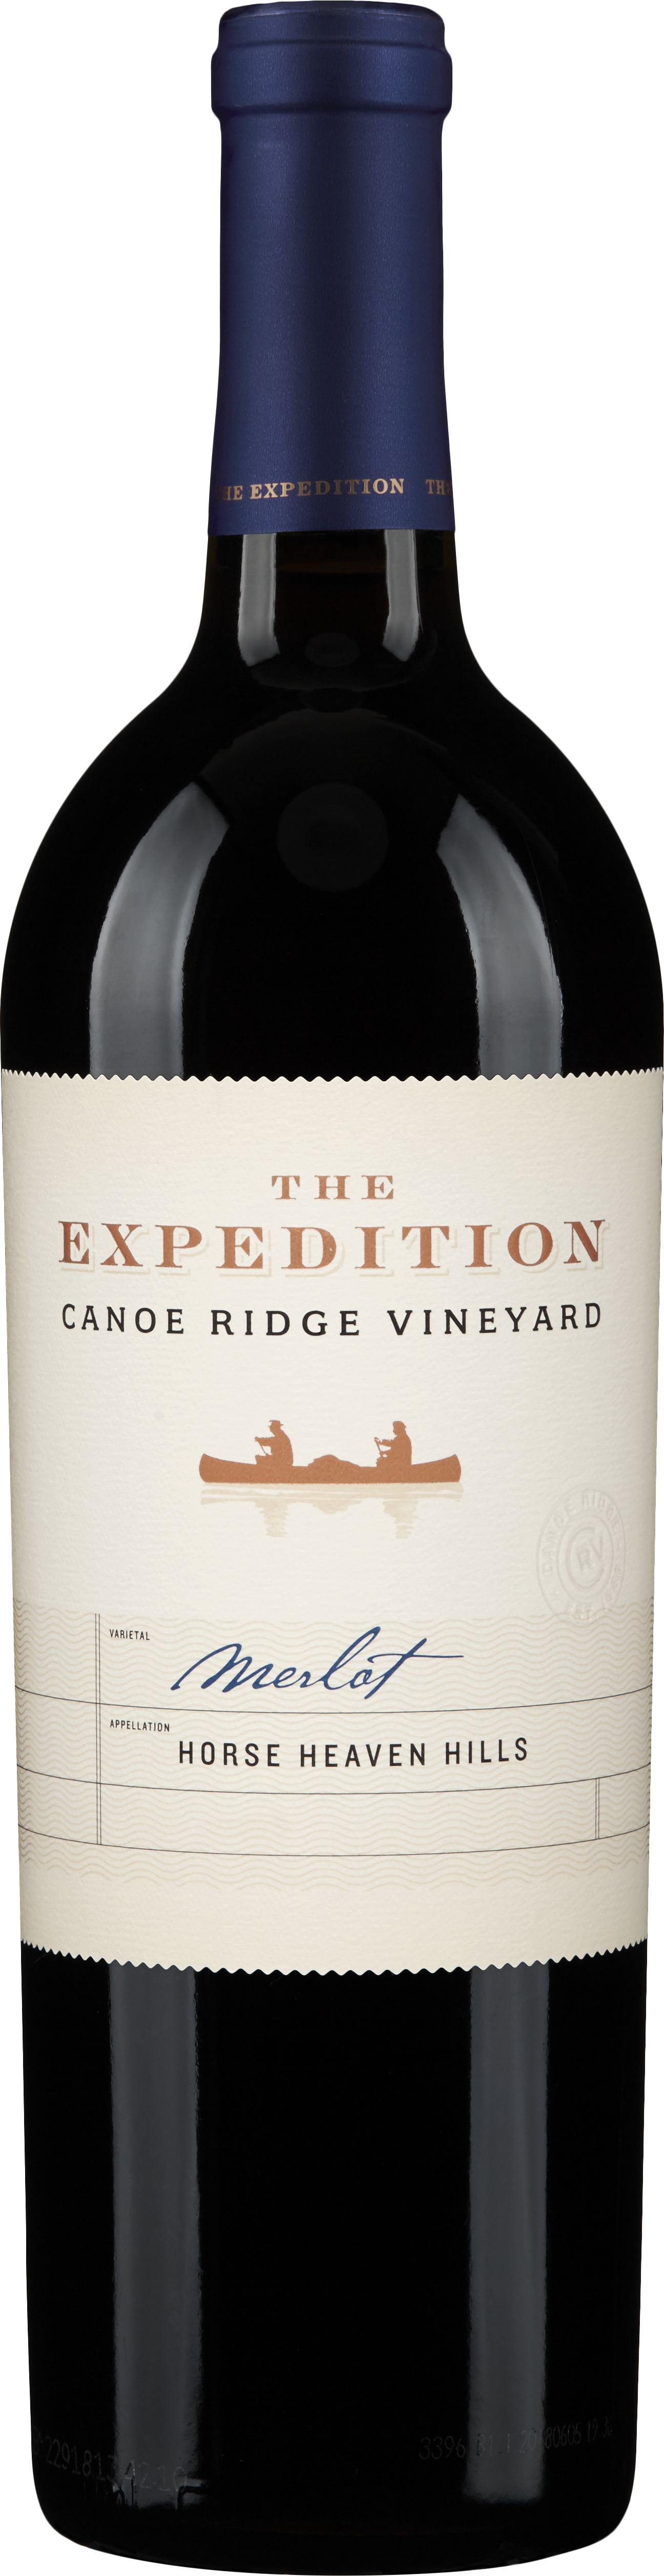 Canoe Ridge Vineyard  The Expedition Merlot Image